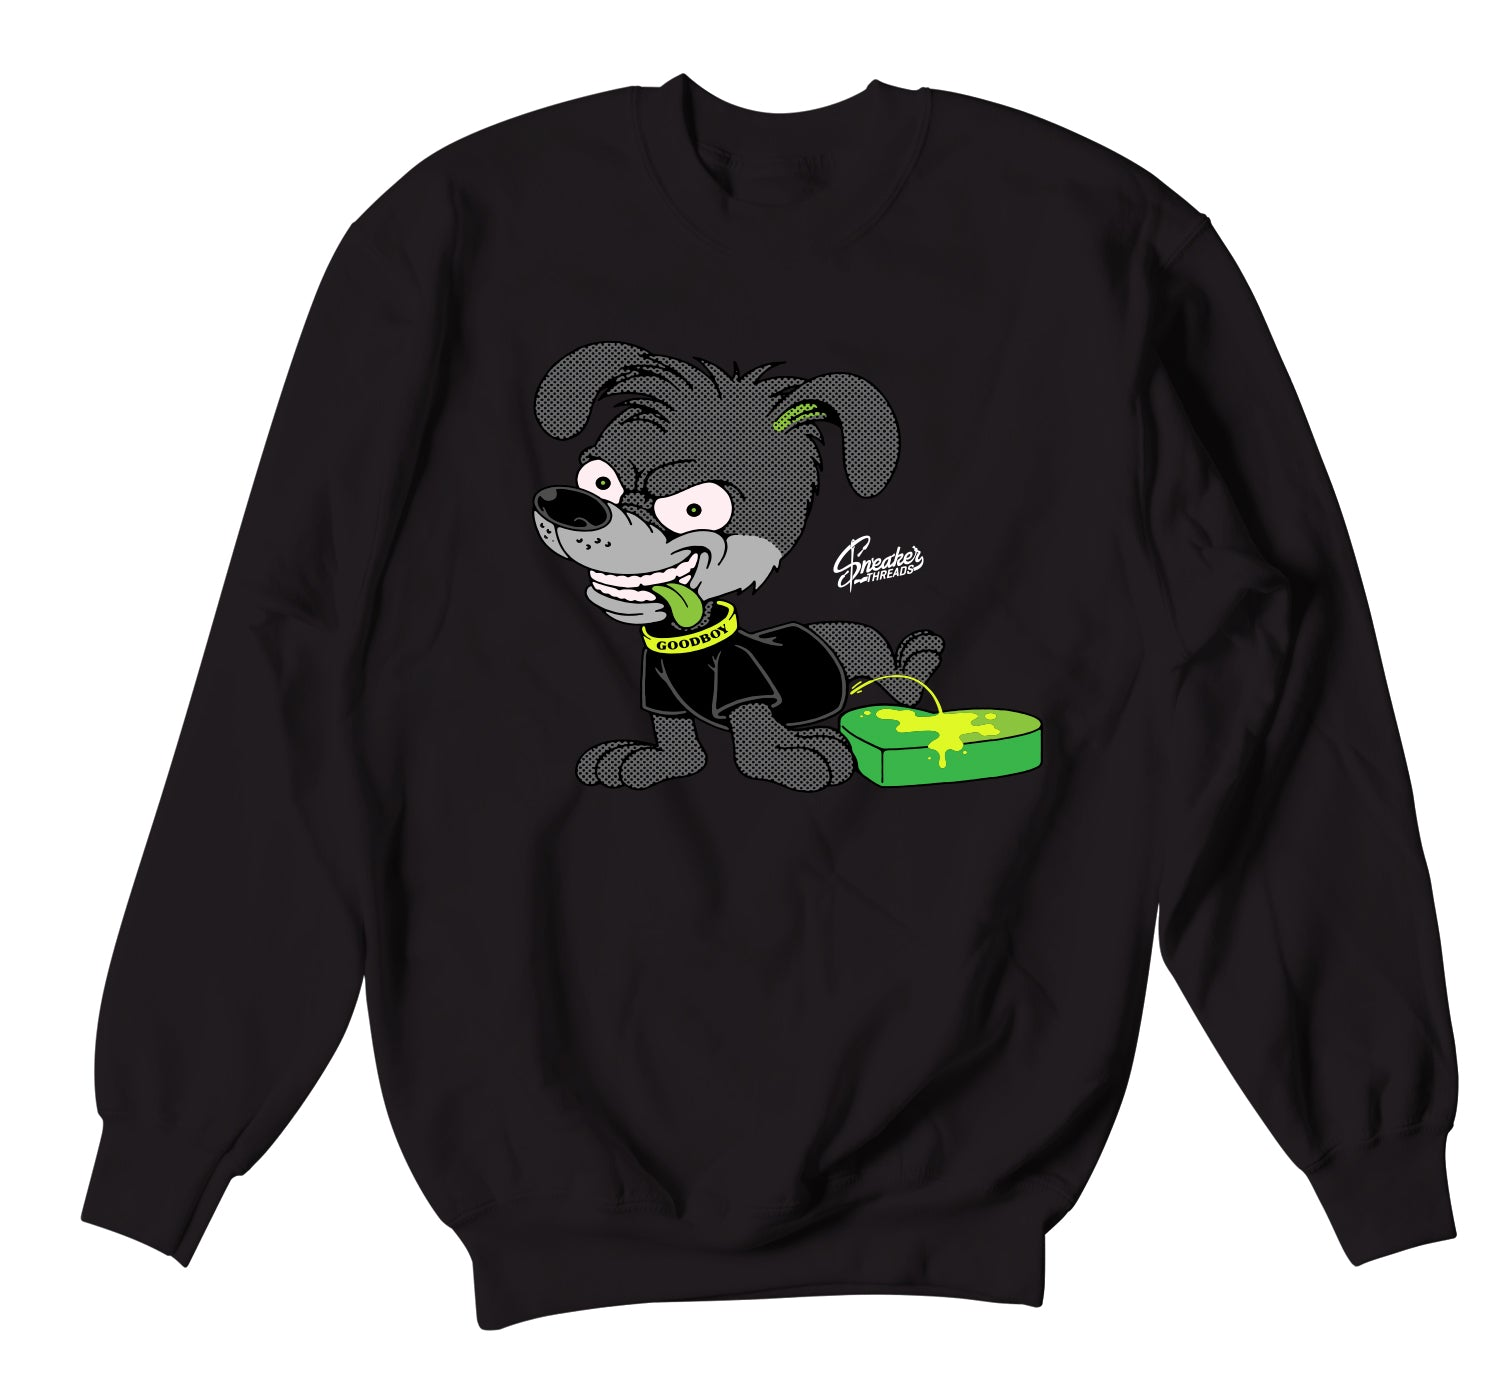 Crewnecks designed to match the sneaker grinch 6 s